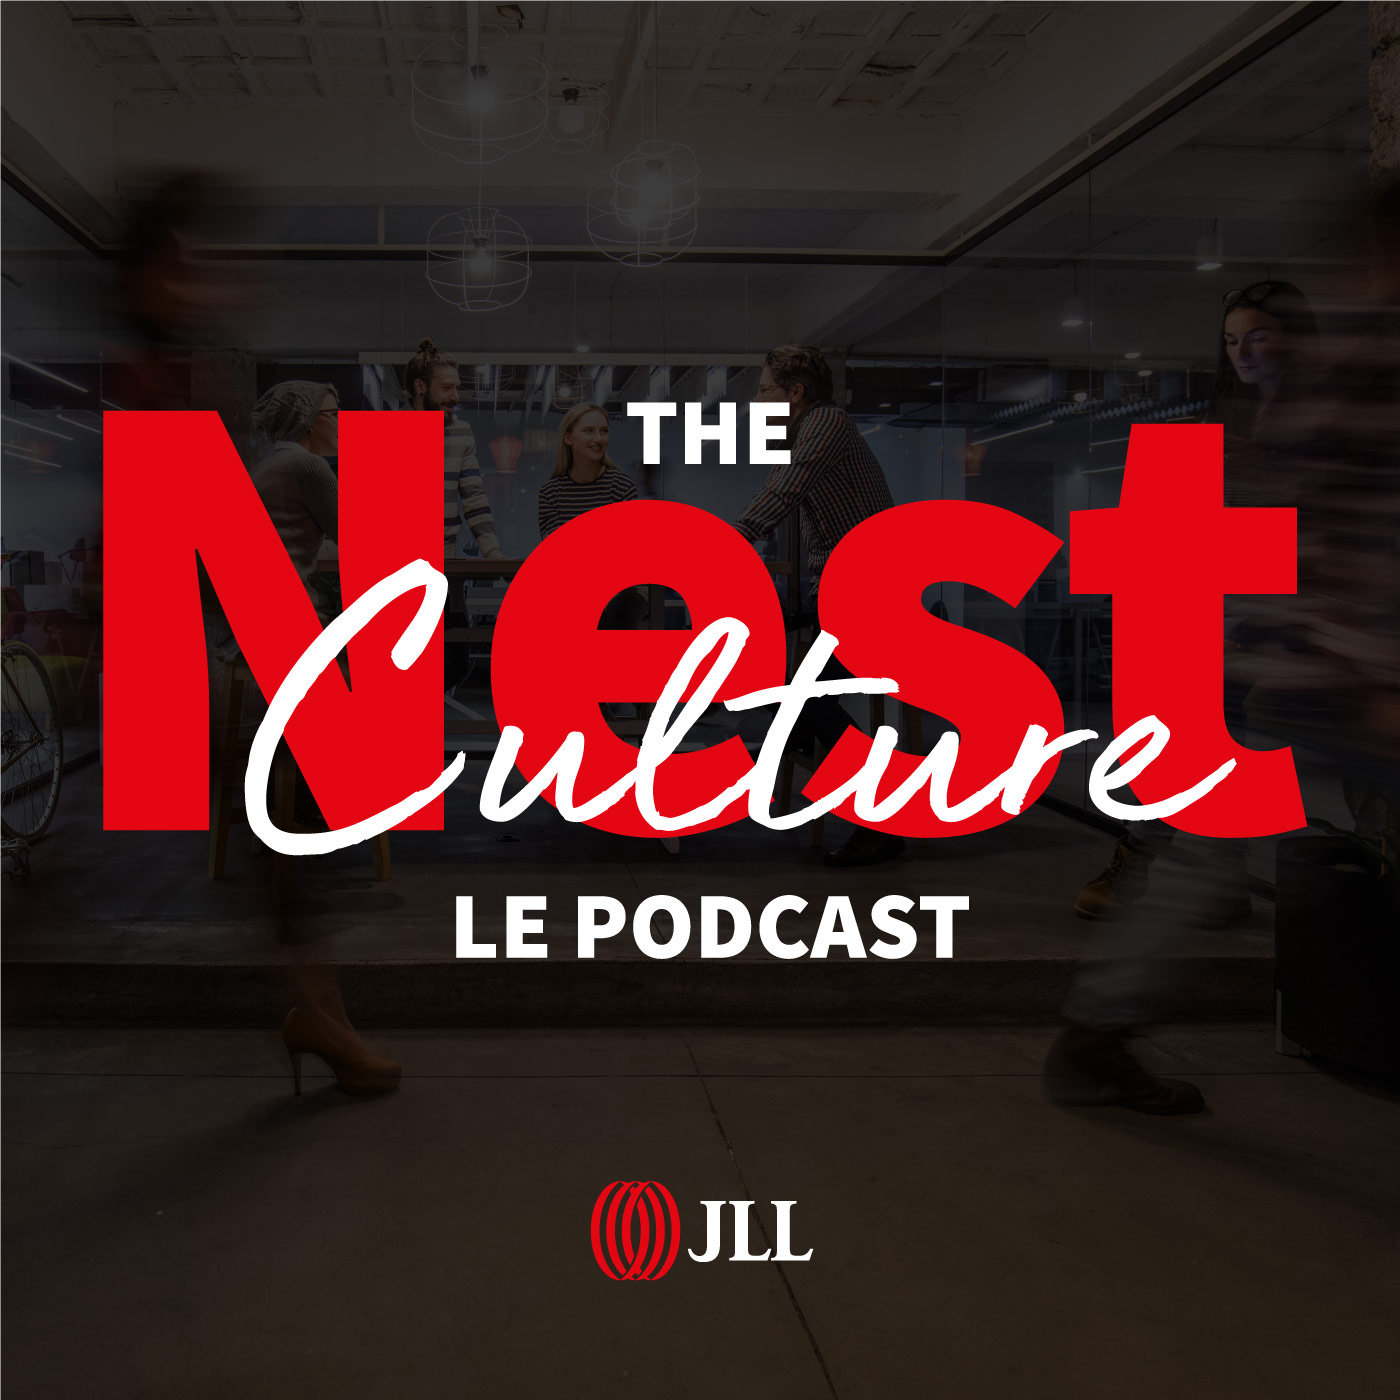 Artwork for podcast The Nest Culture